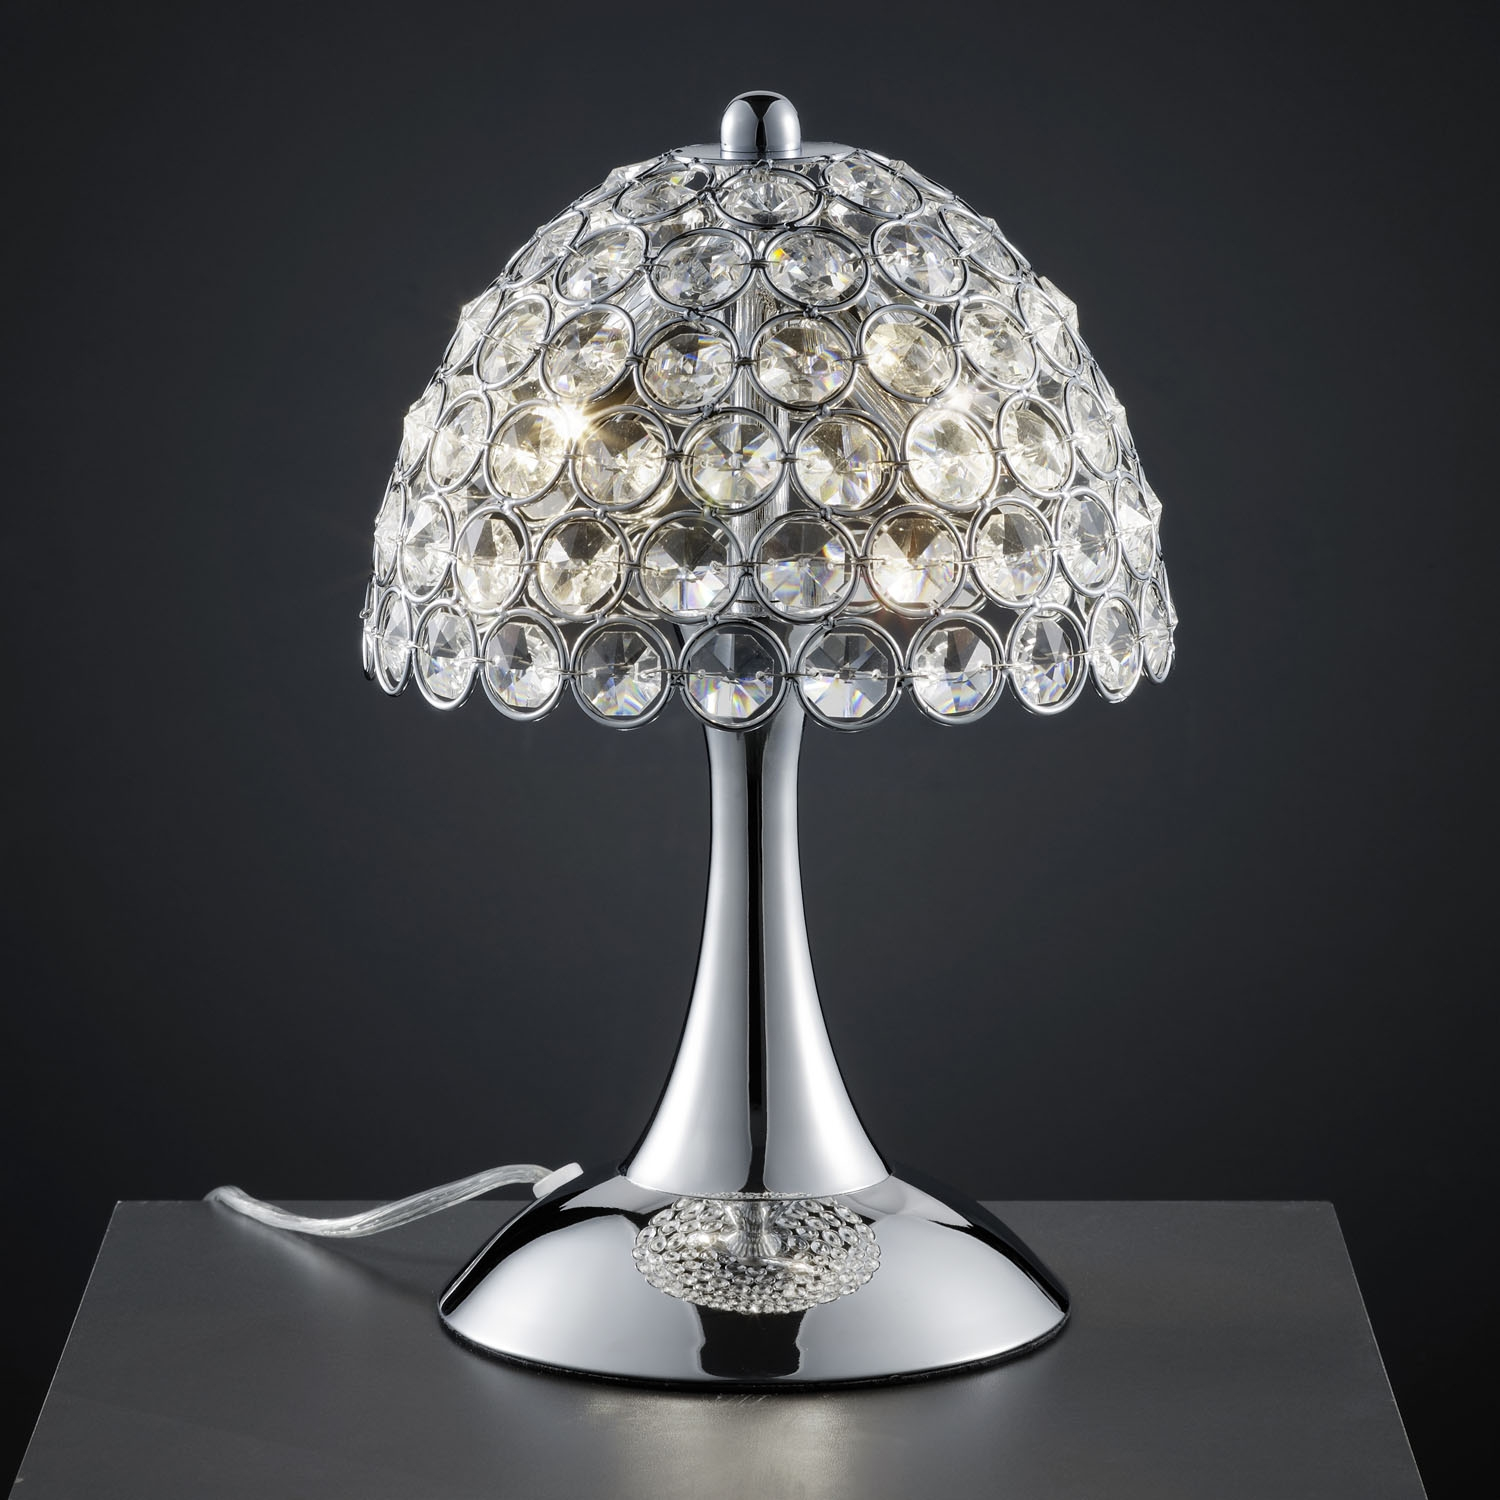 Lamp Art Deco Chandelier Luxury Crystal Ball Dangle Marry Romantic Regarding Crystal Table Chandeliers (#8 of 12)